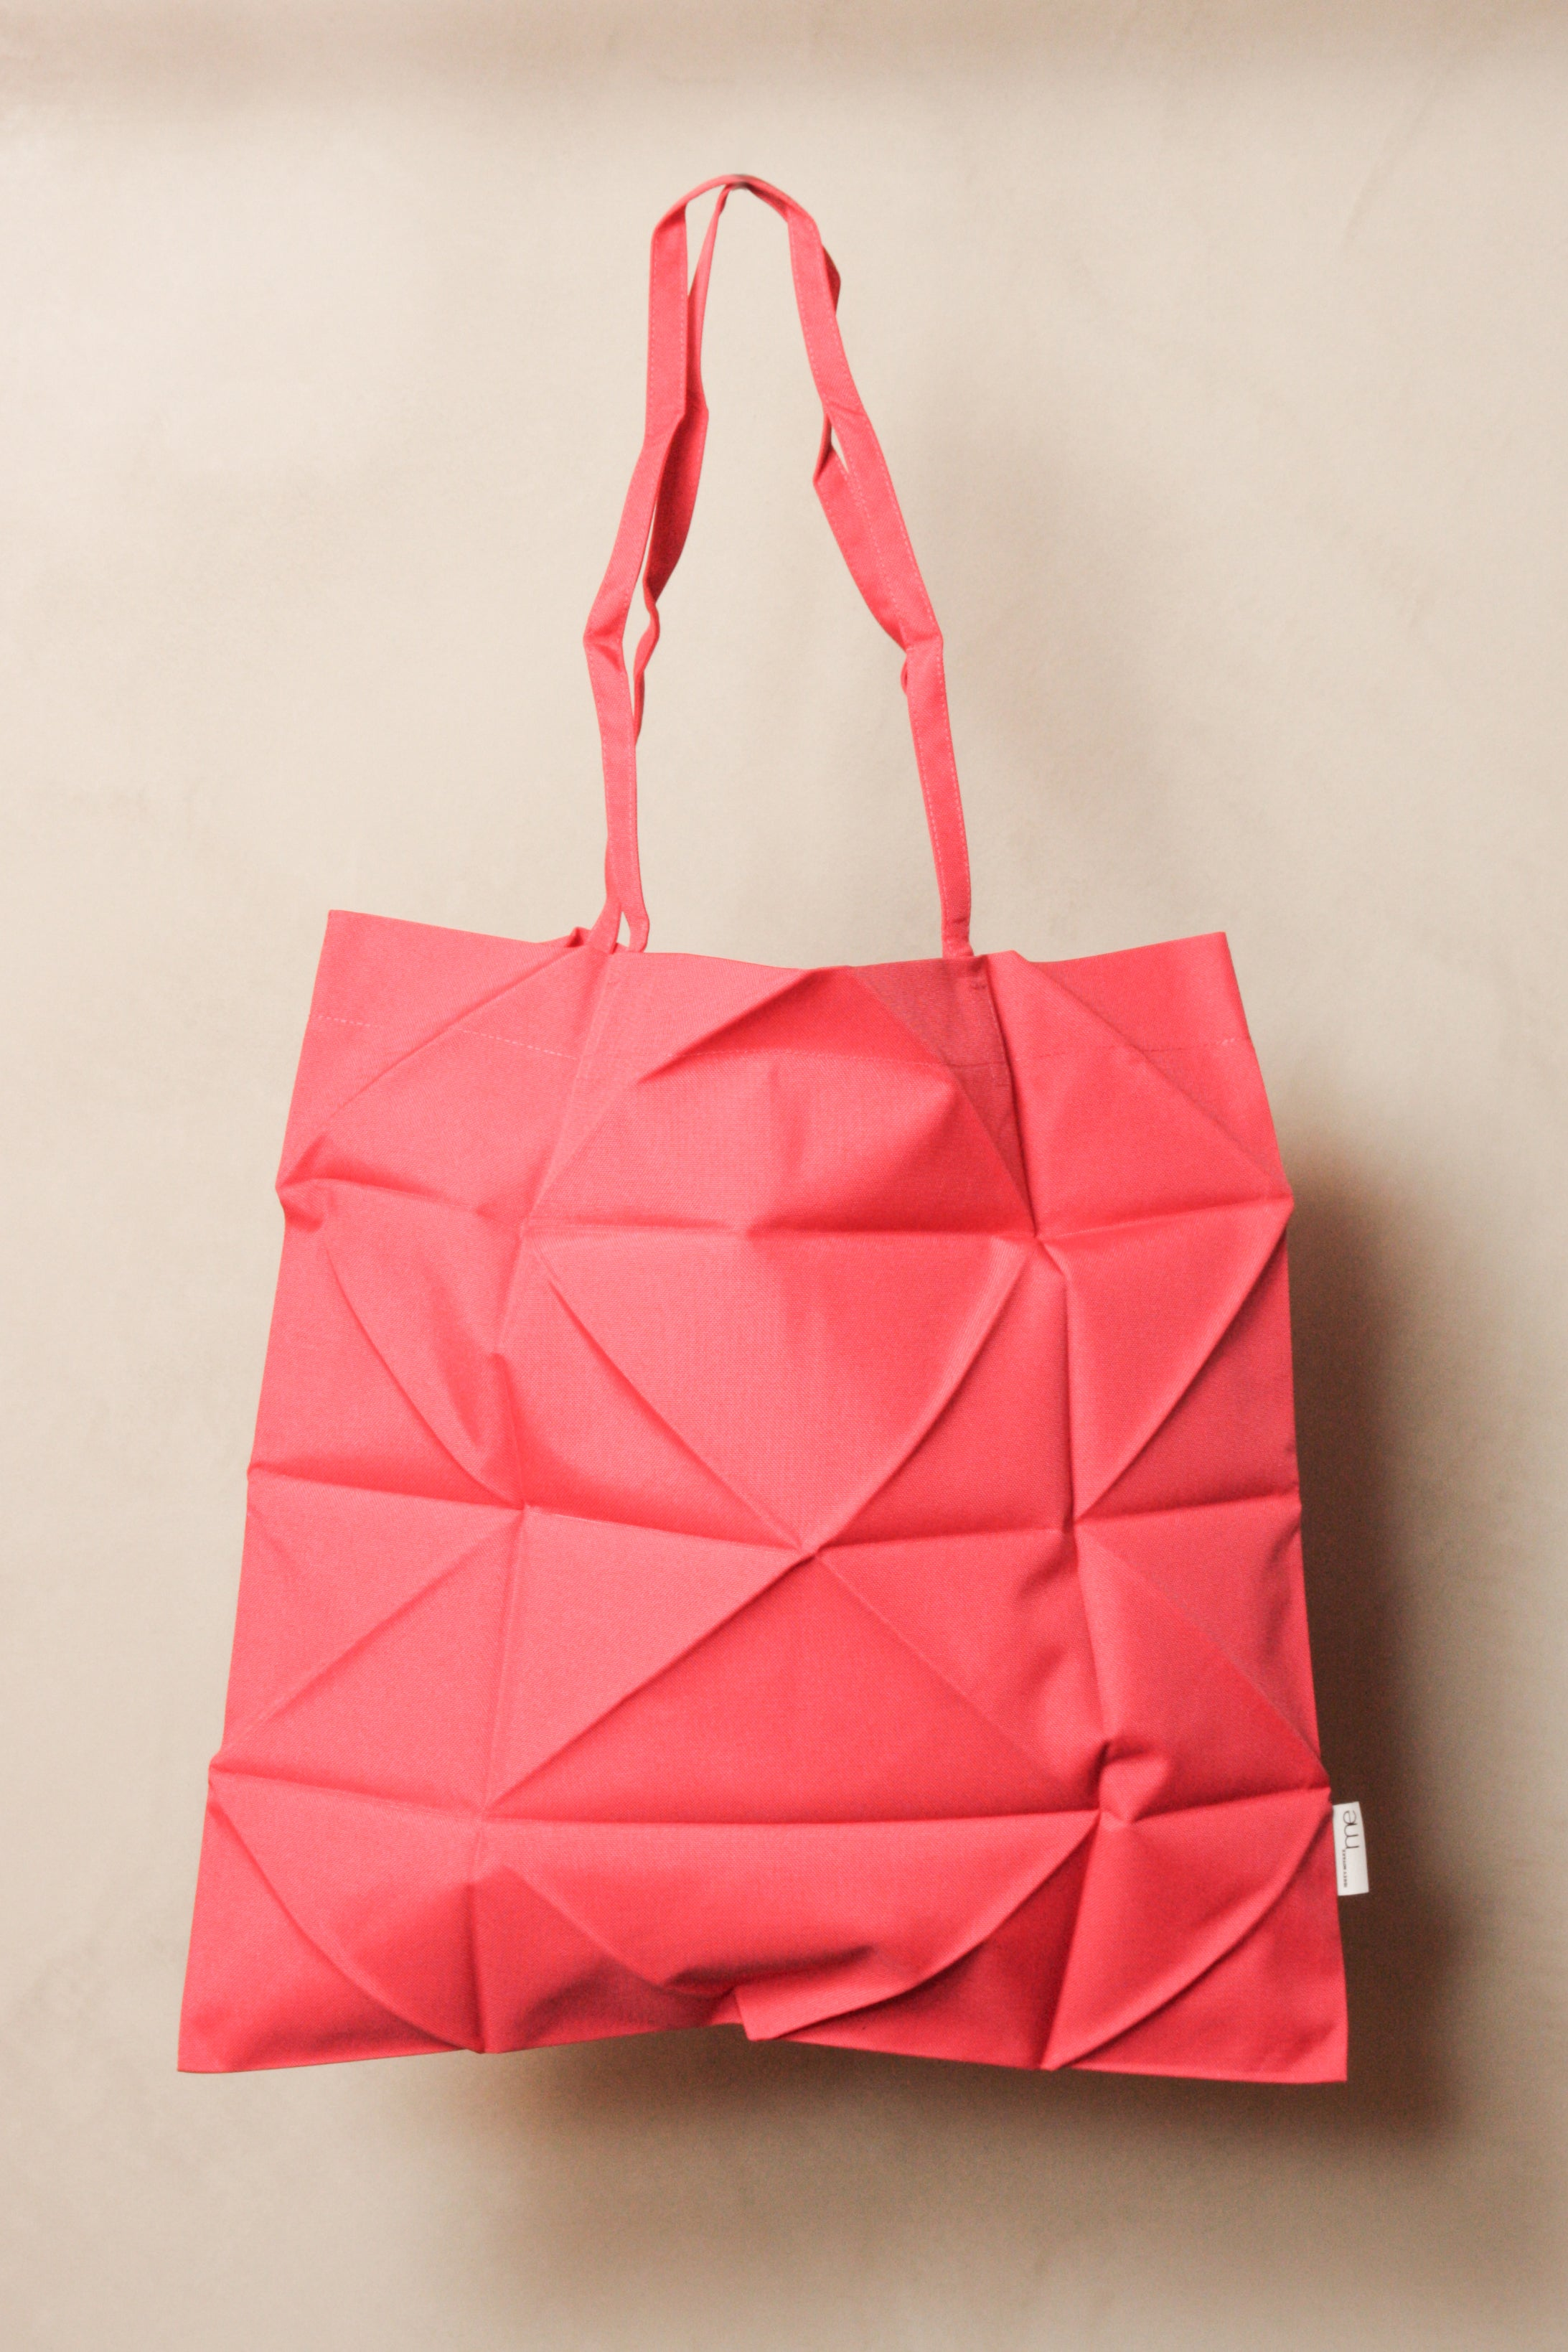 Crown Tote Bag Coral